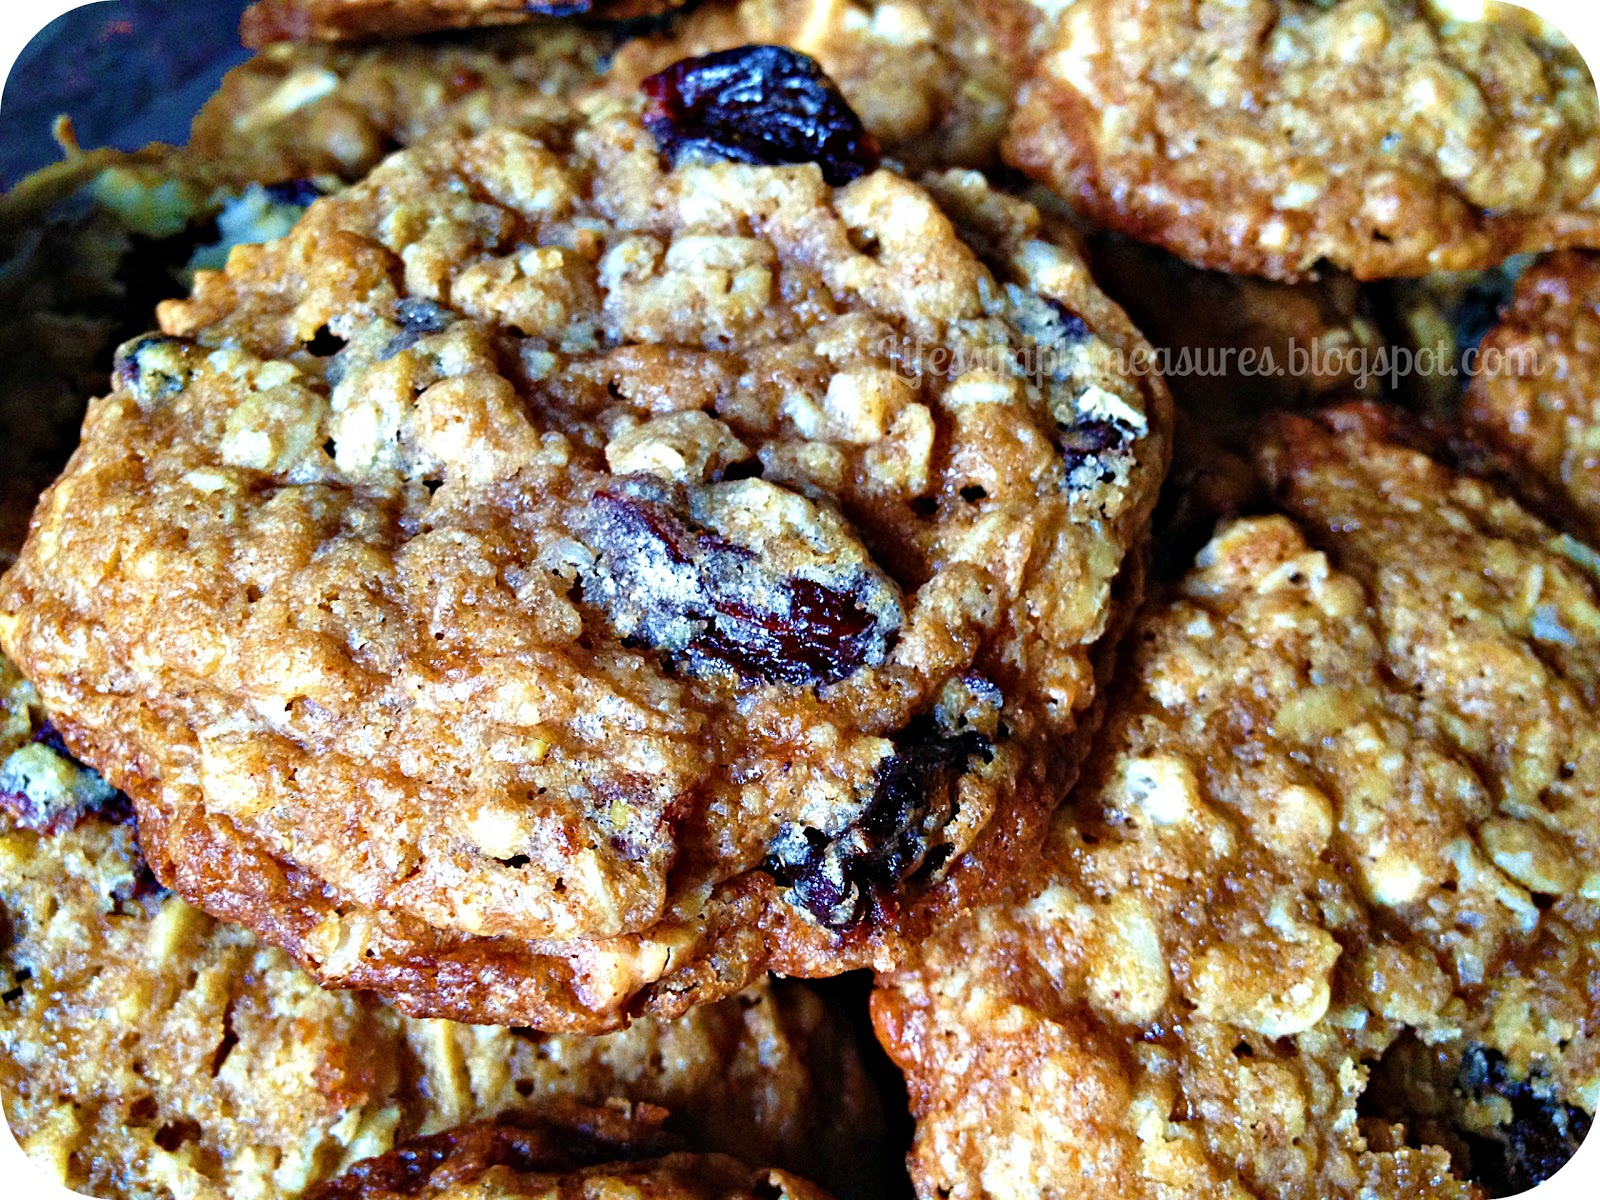 Life's Simple Measures: White Chocolate Cherry Oatmeal Cookies